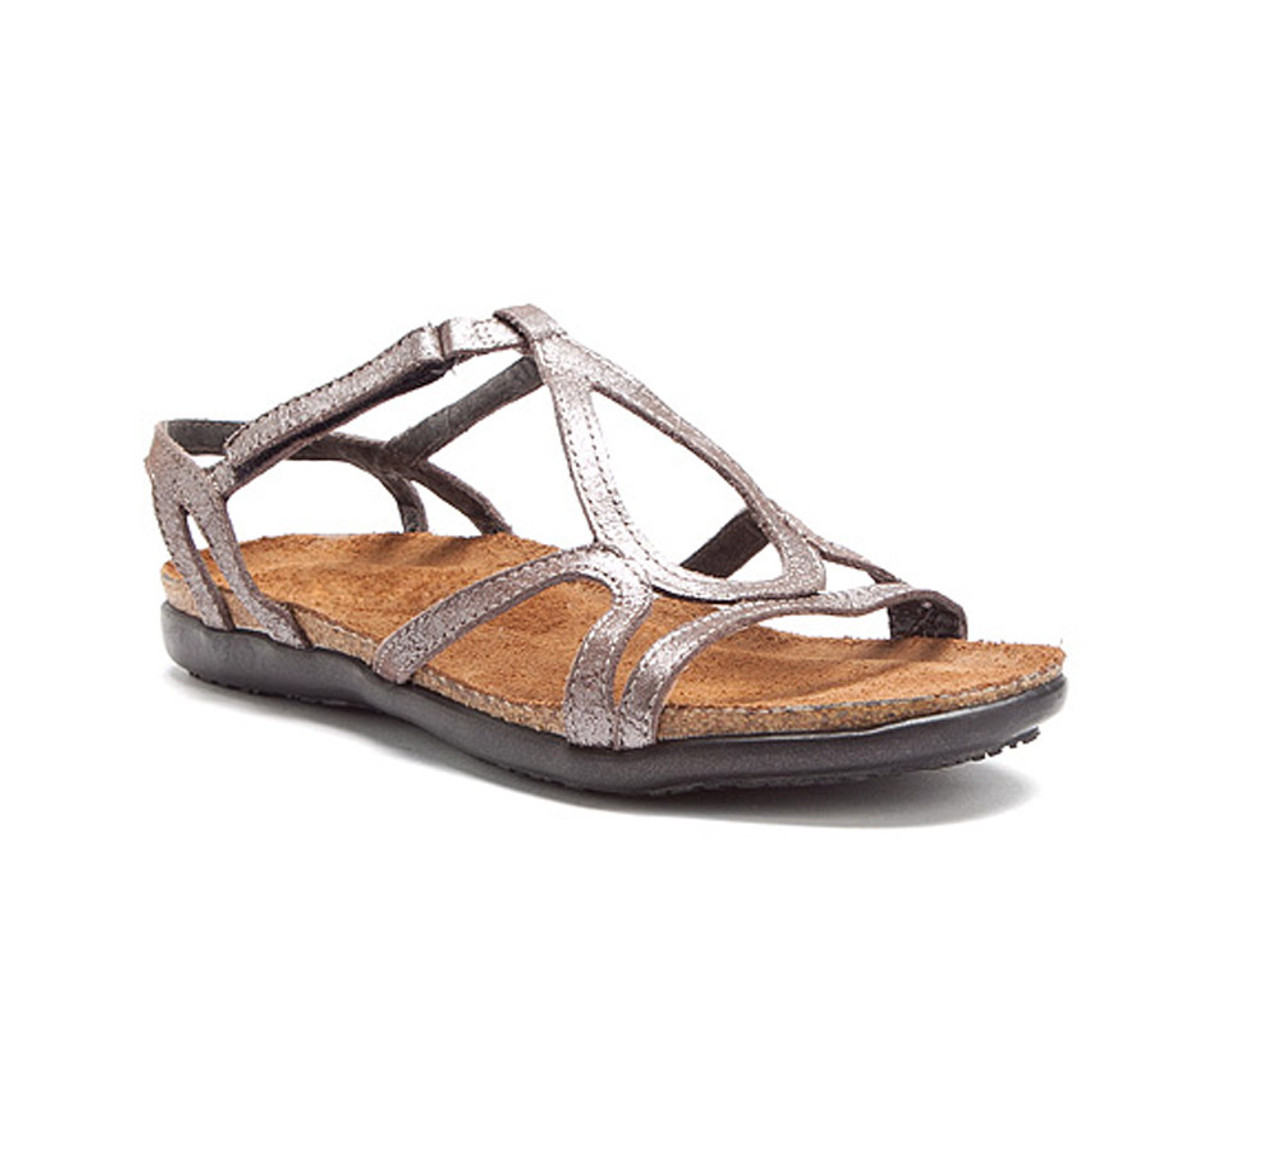 553afb66f0ea Naot Women s Dorith Sandal Silver Threads Leather - Shop now   Shoolu.com